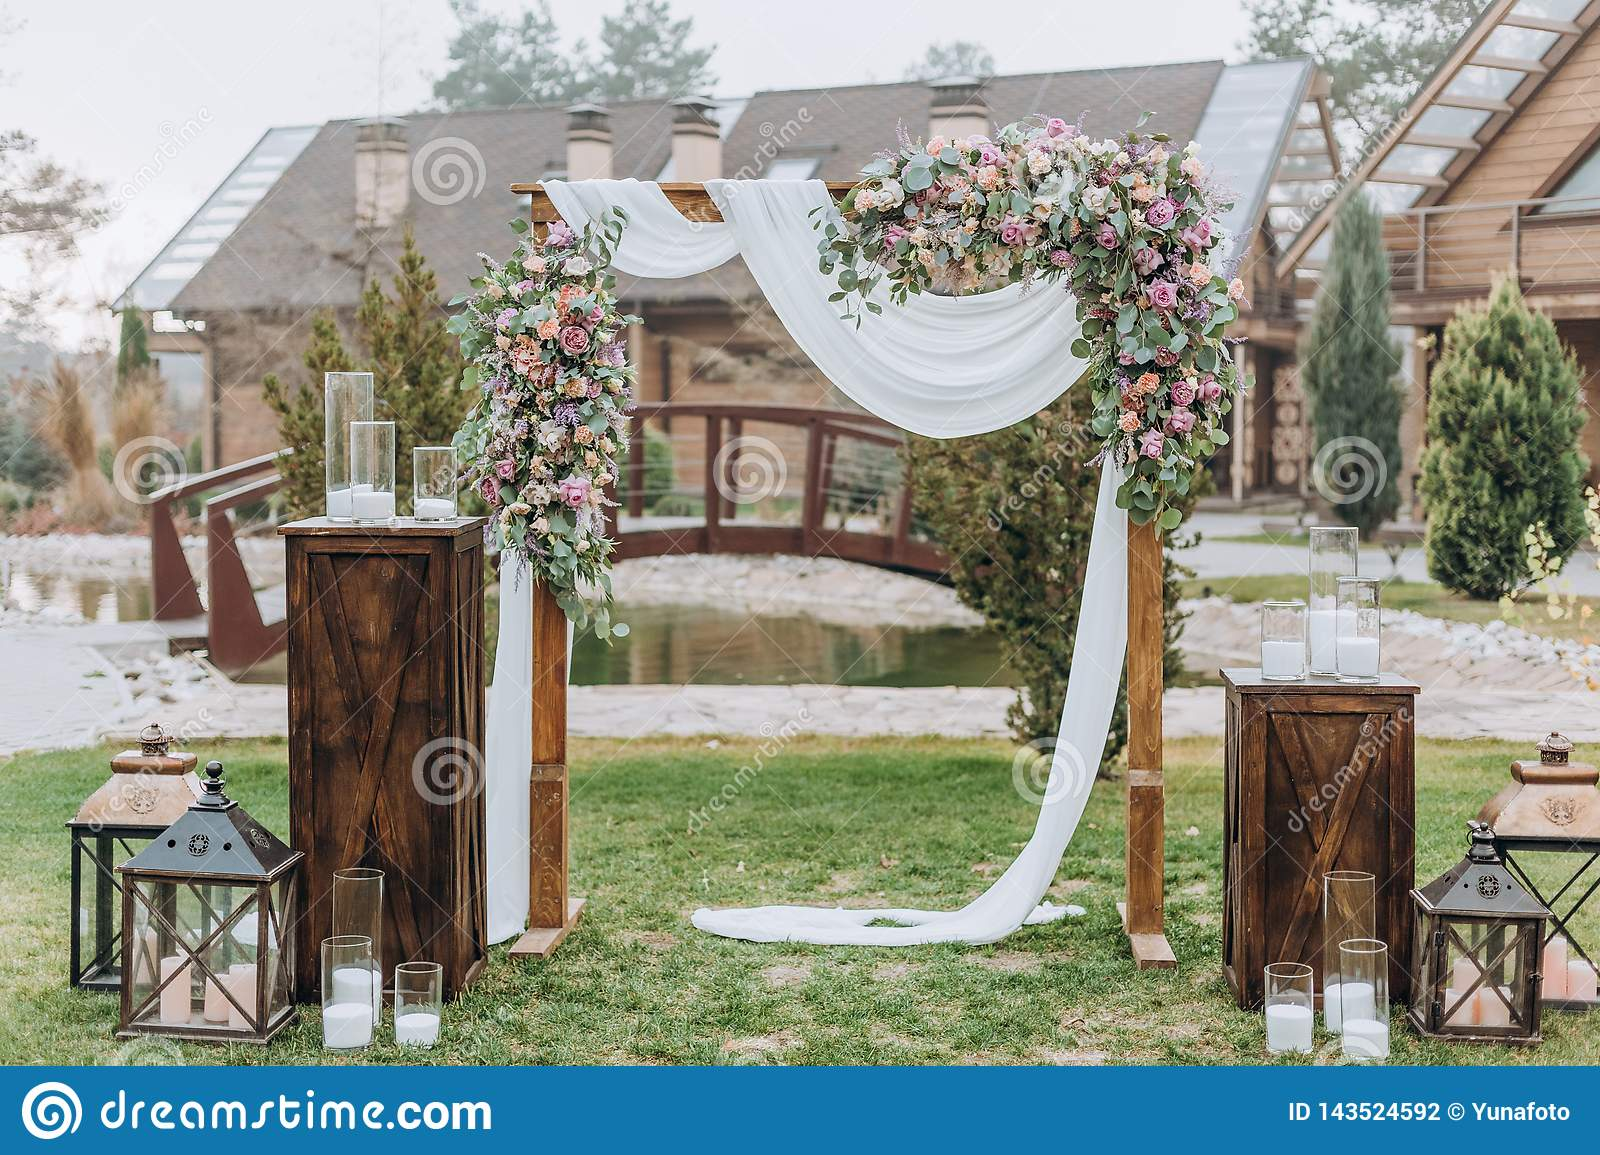 Wedding Decorations Arch Outside Summer Decor Fabric Stock Photo